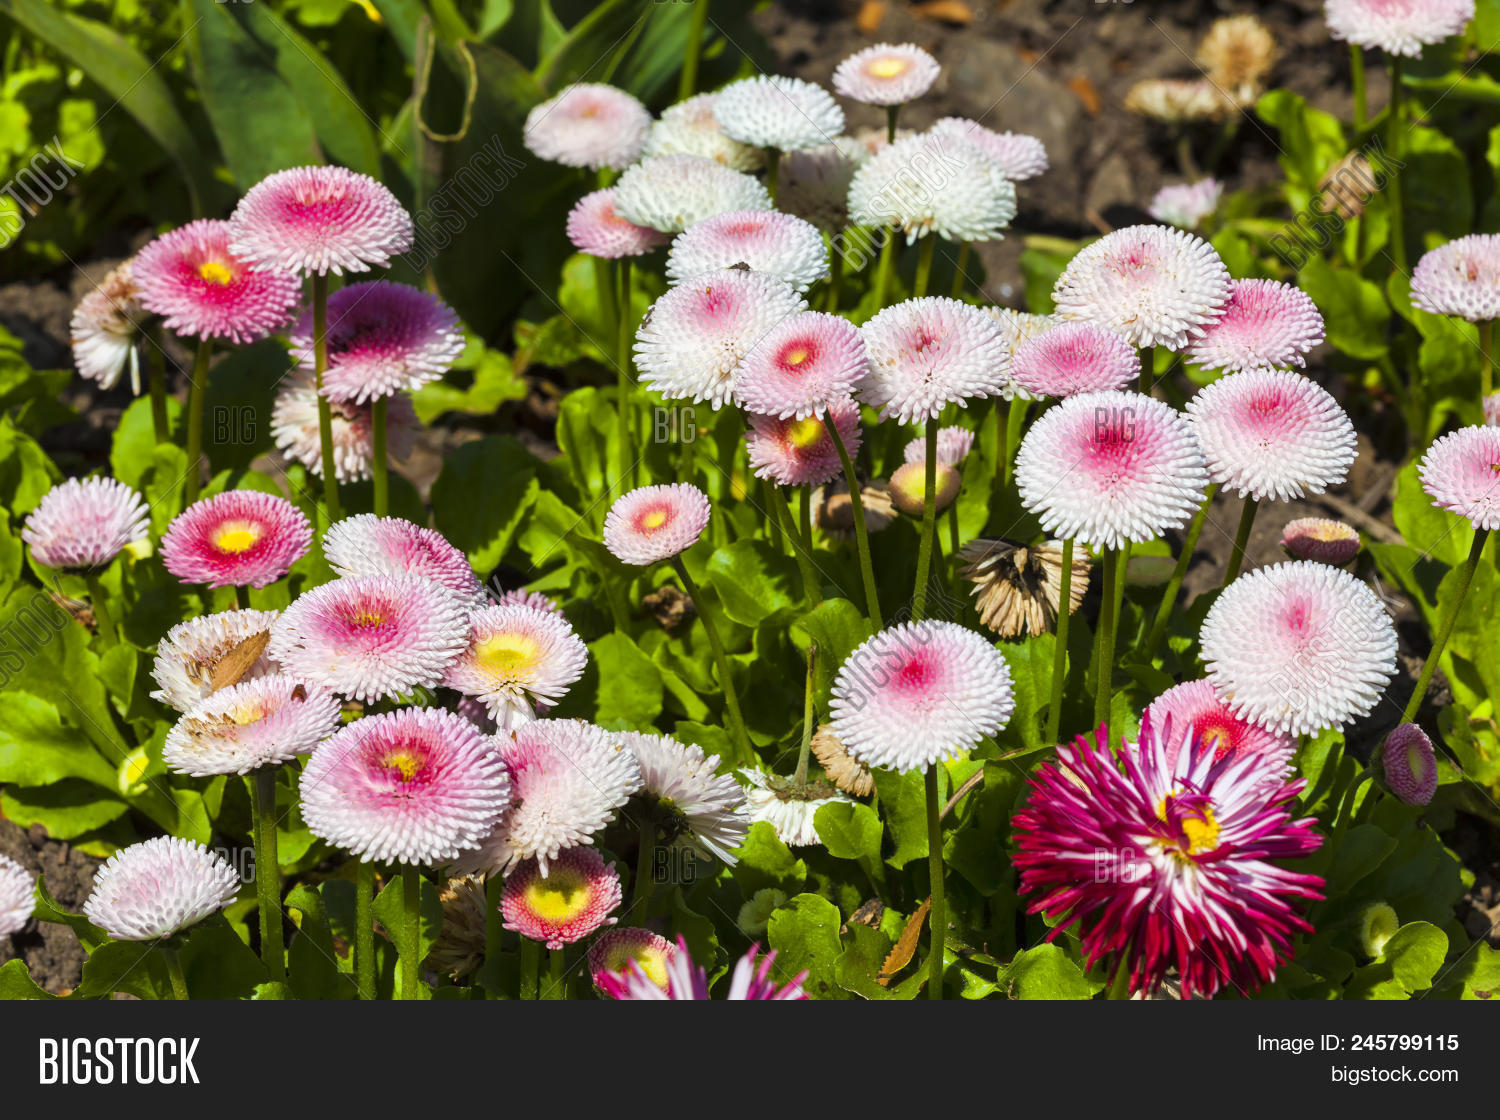 Pink bellis perennis image photo free trial bigstock pink bellis perennis a common pompom type daisy herbaceous perennial hardy garden flower plant izmirmasajfo